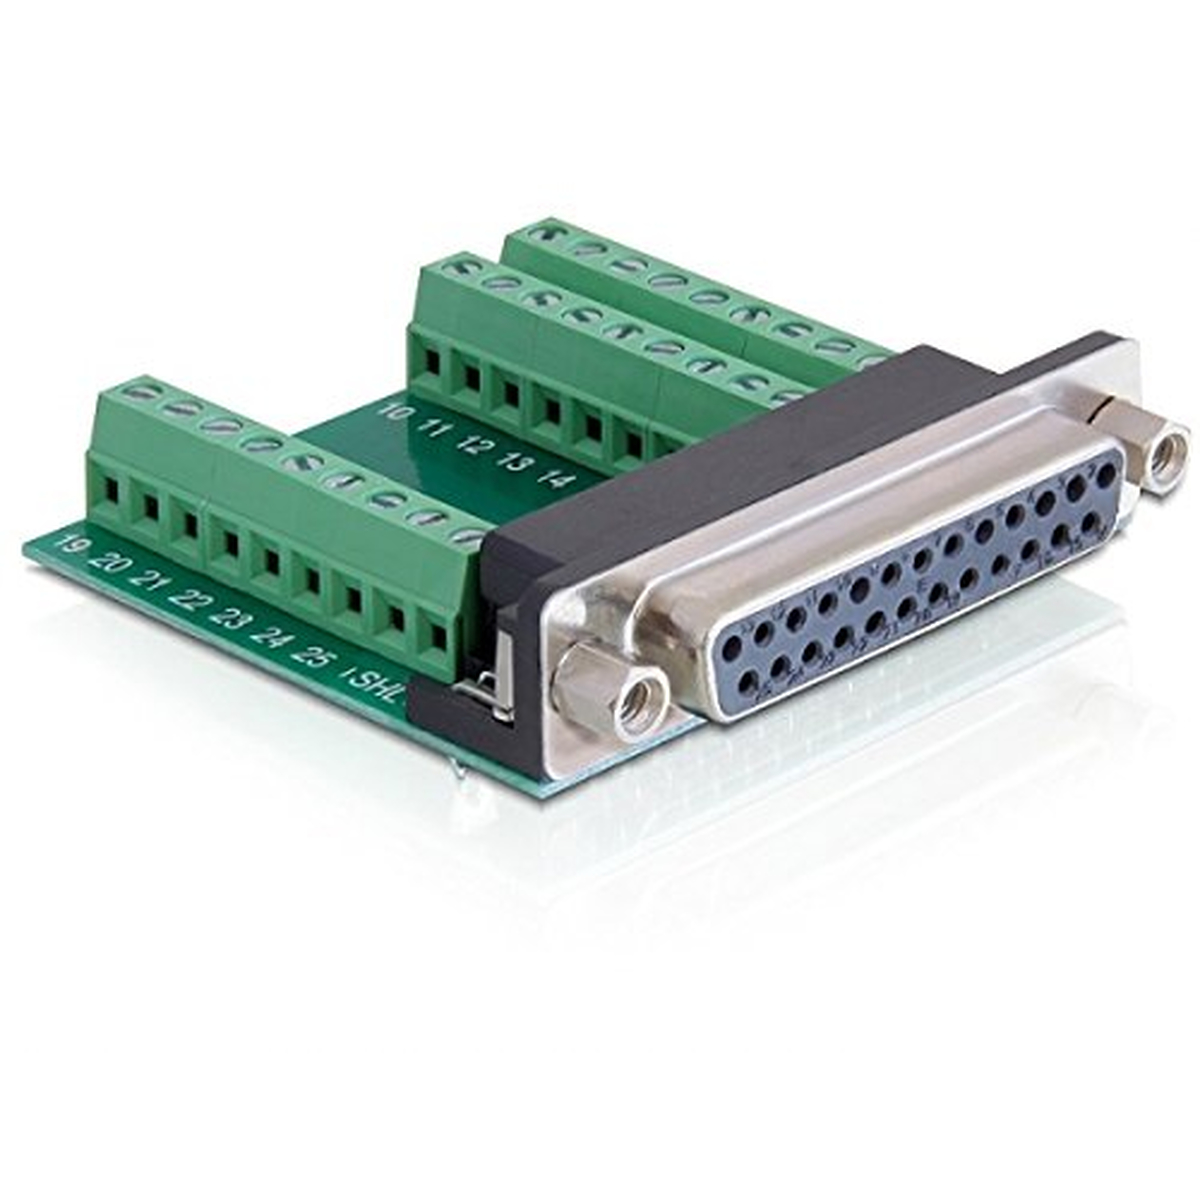 DeLOCK Adapter Sub-D 25 Pin Buchse > Terminalblock